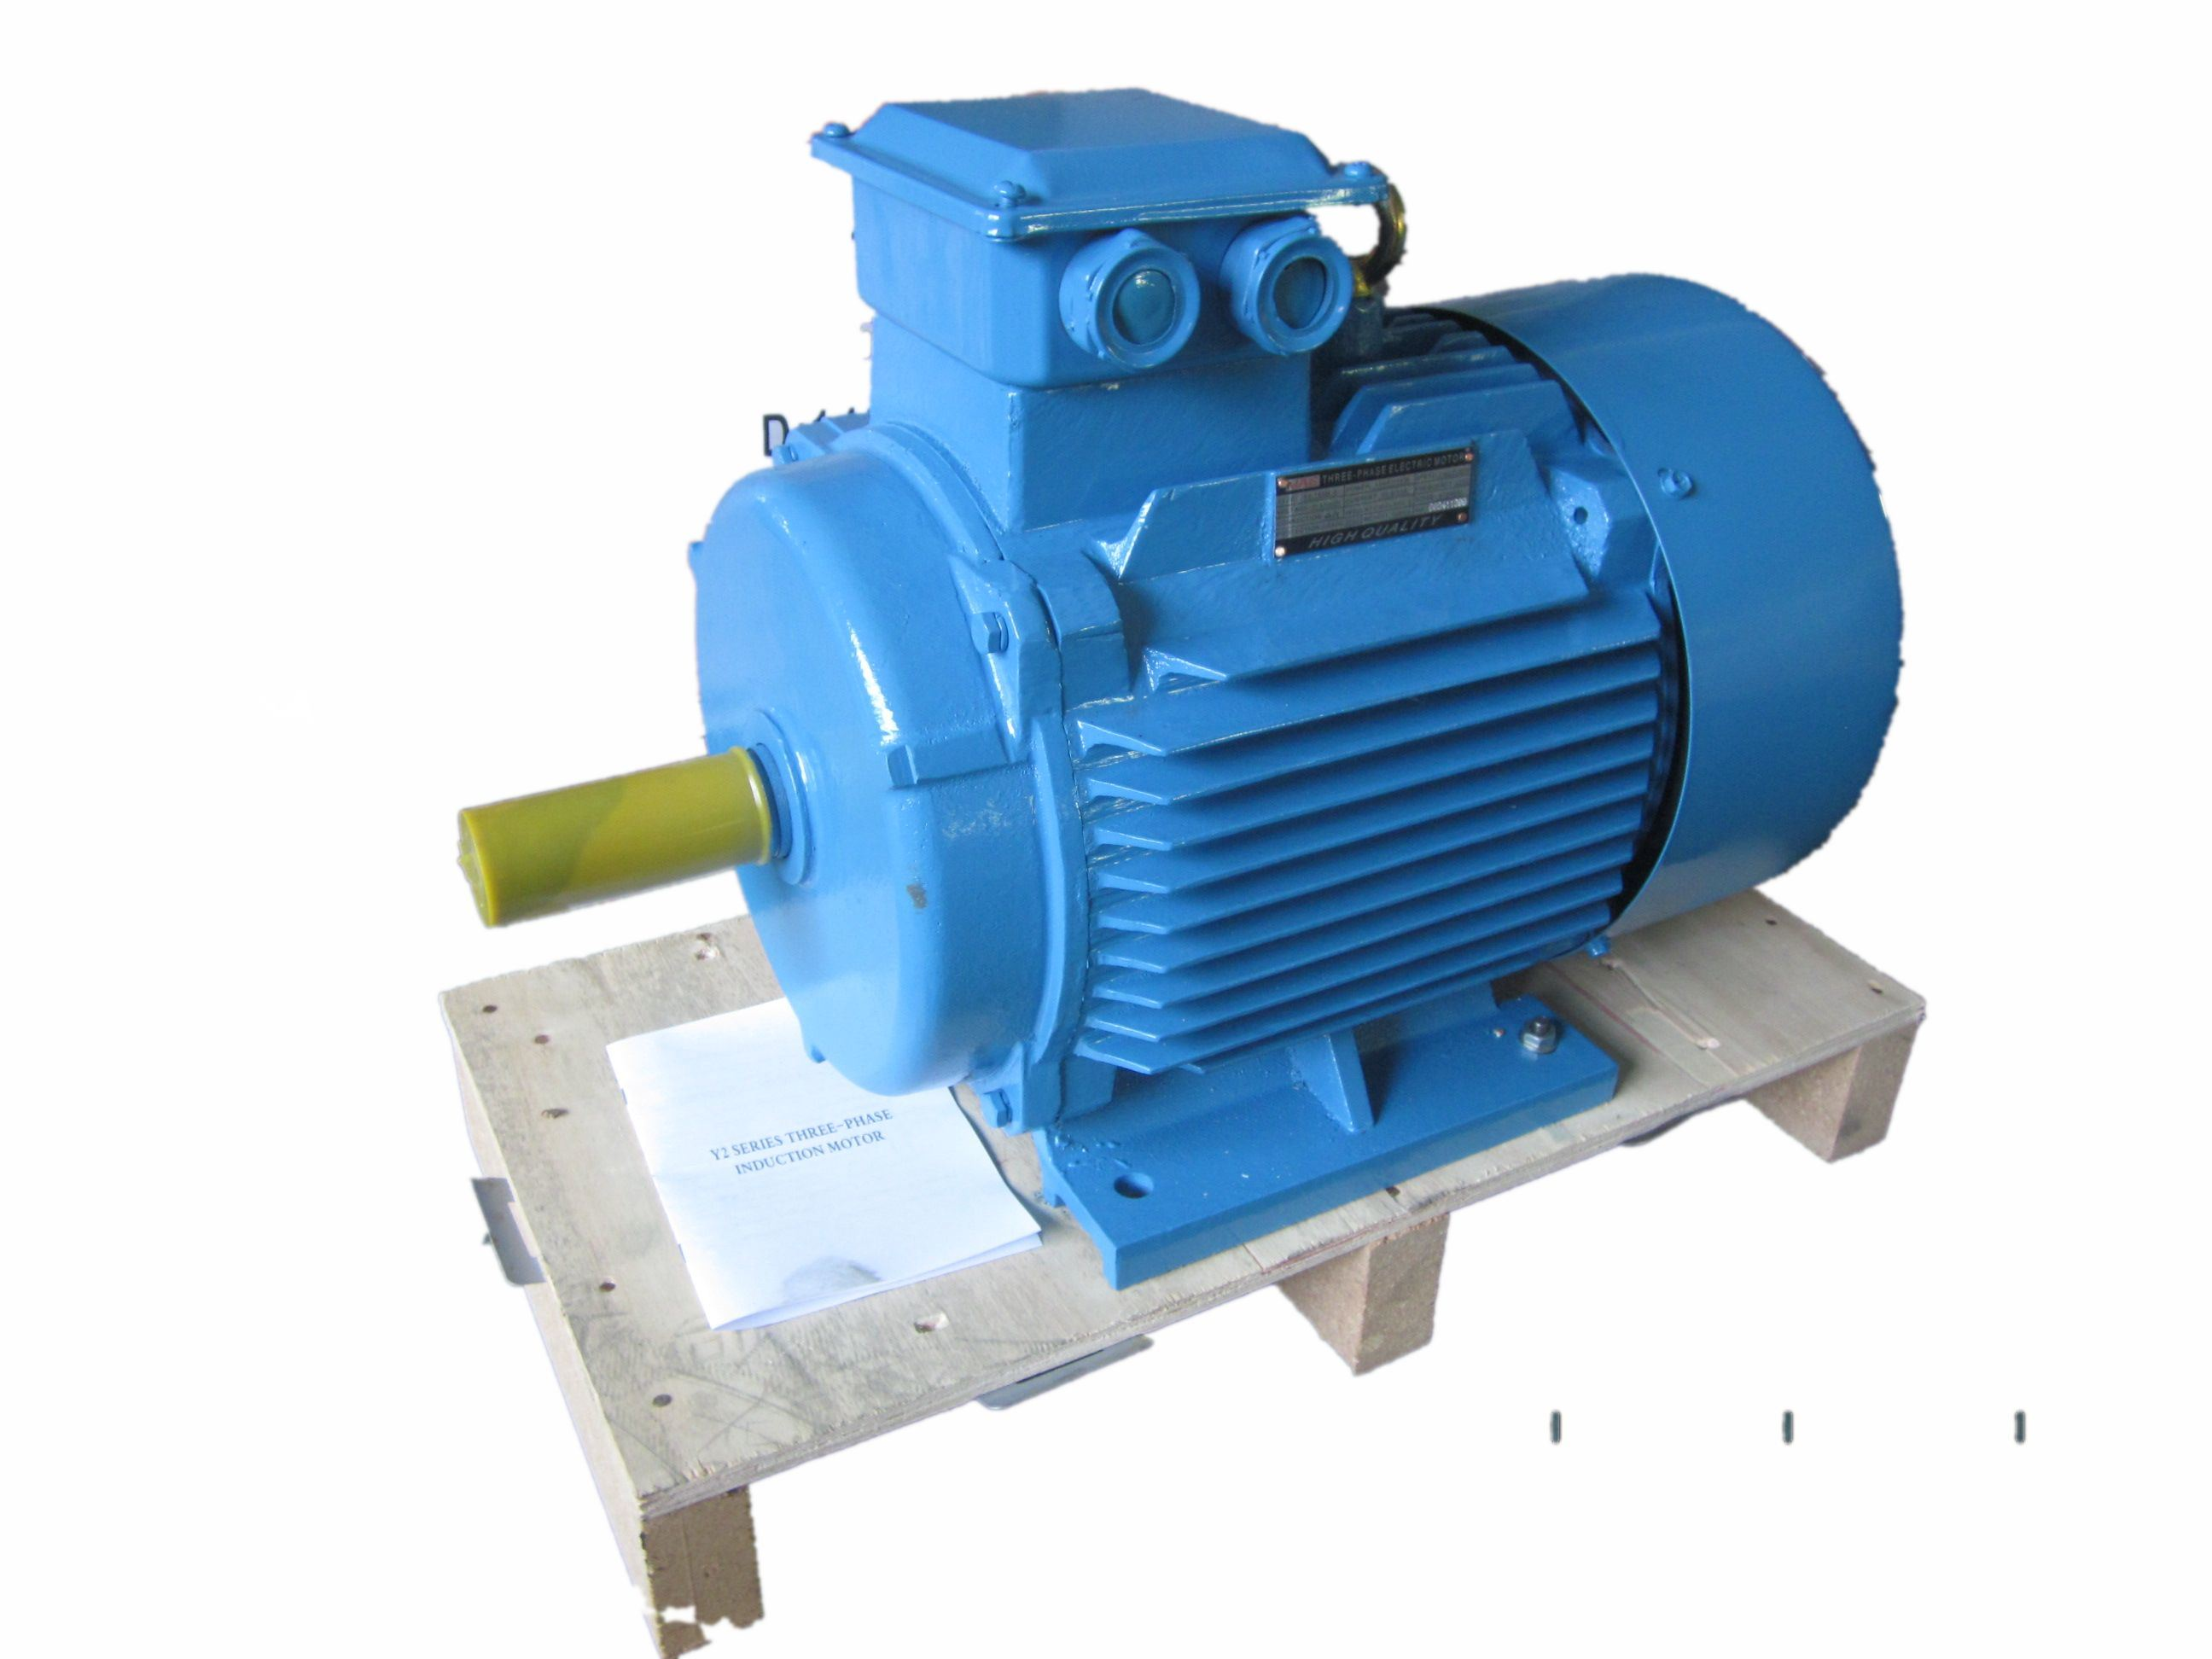 China y2 series three phase induction motor photos for Three phase induction motor